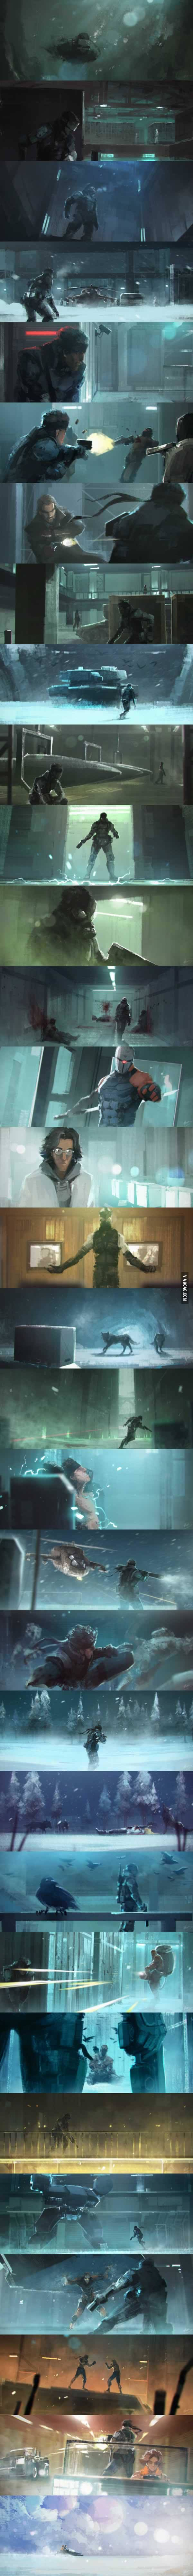 The best game And story I have ever seen.  Metal Gear Solid. An Amazing Story Told With Amazing Art - 9GAG